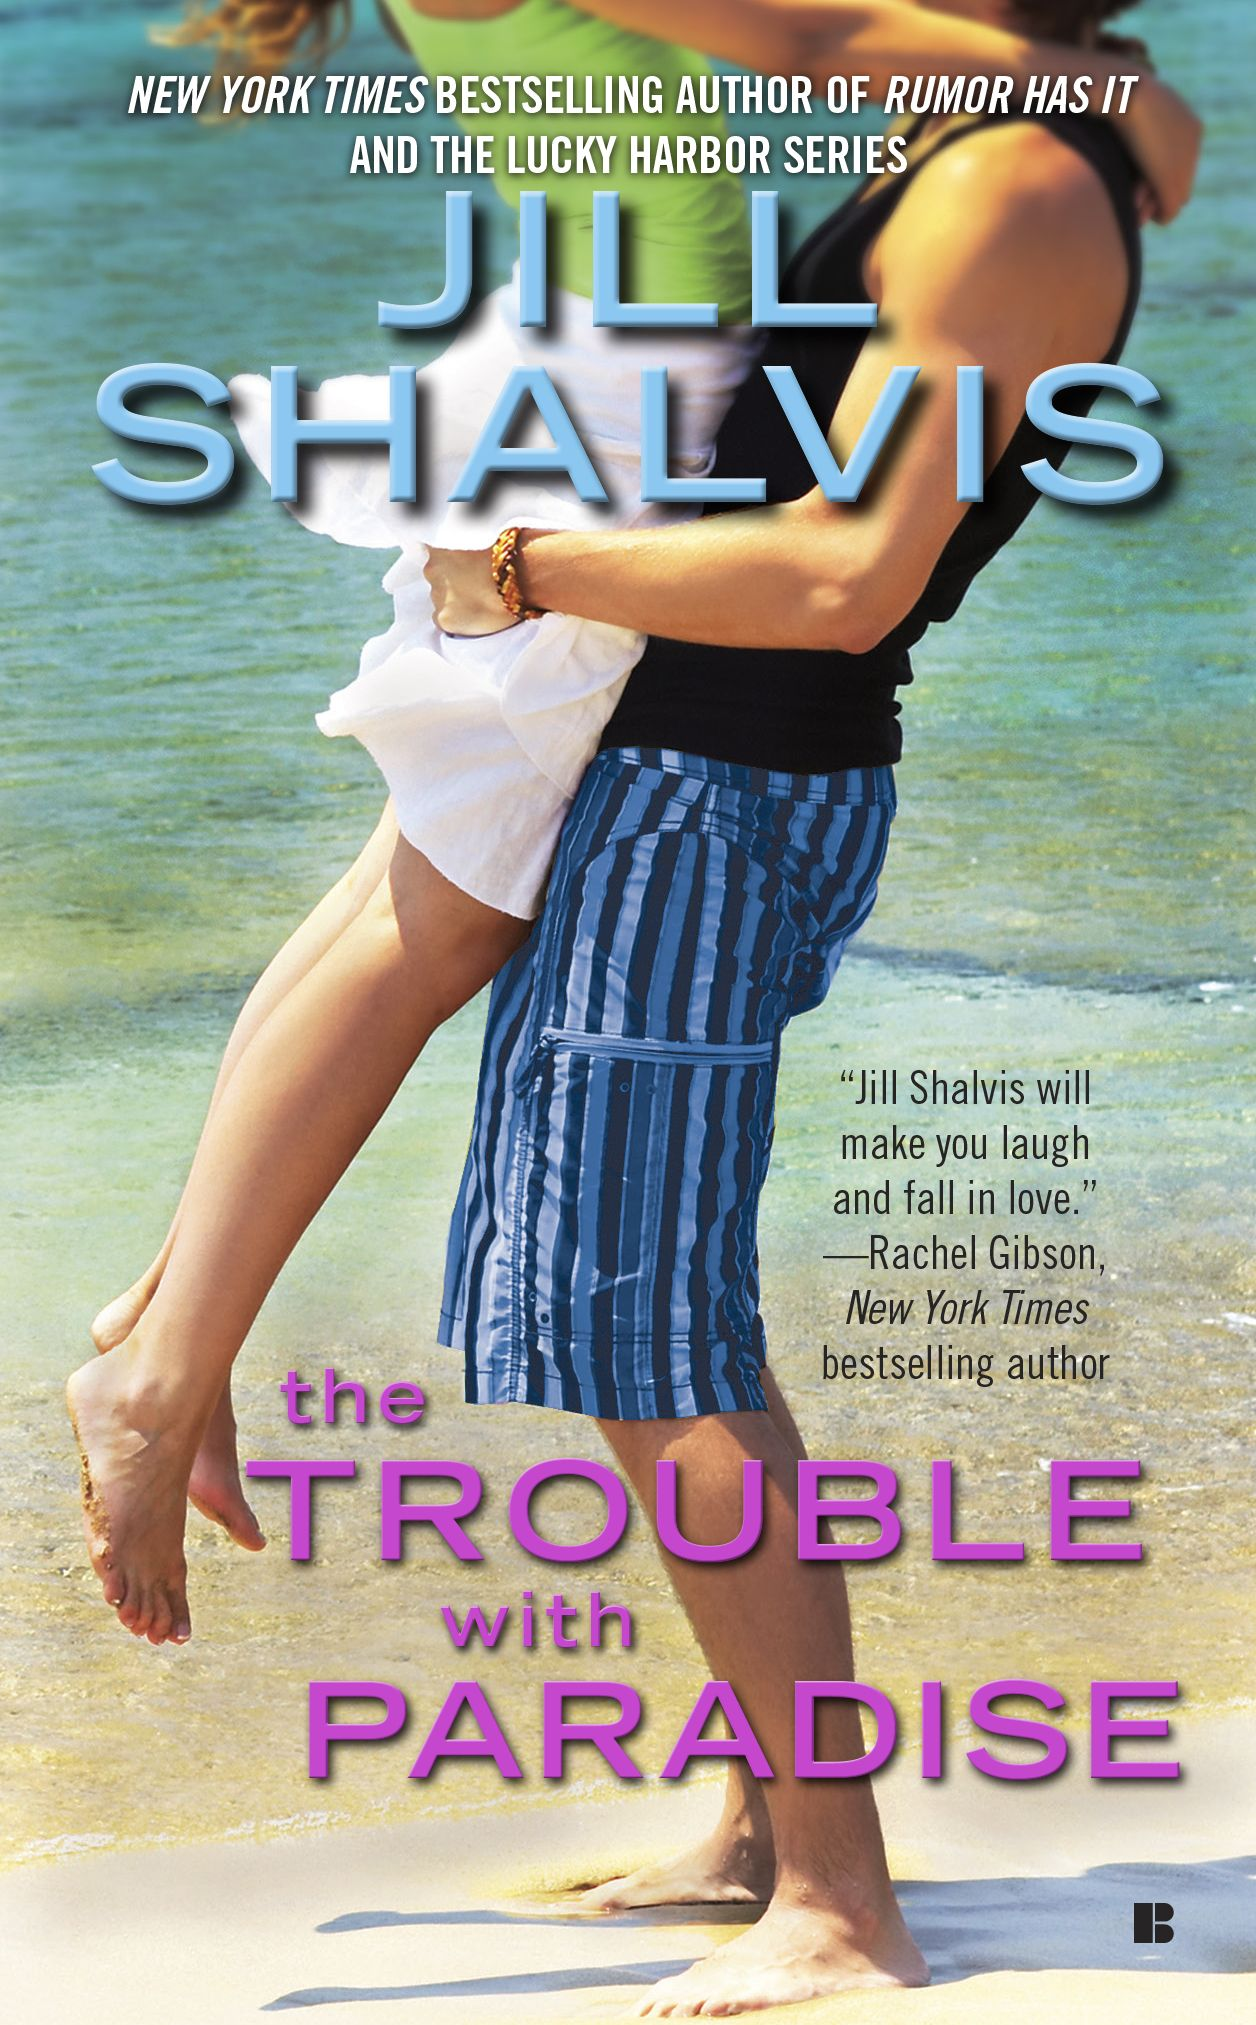 Jill Shalvis - The Trouble with Paradise / #awordfromJoJo #ContemporaryRomance #JillShalvis